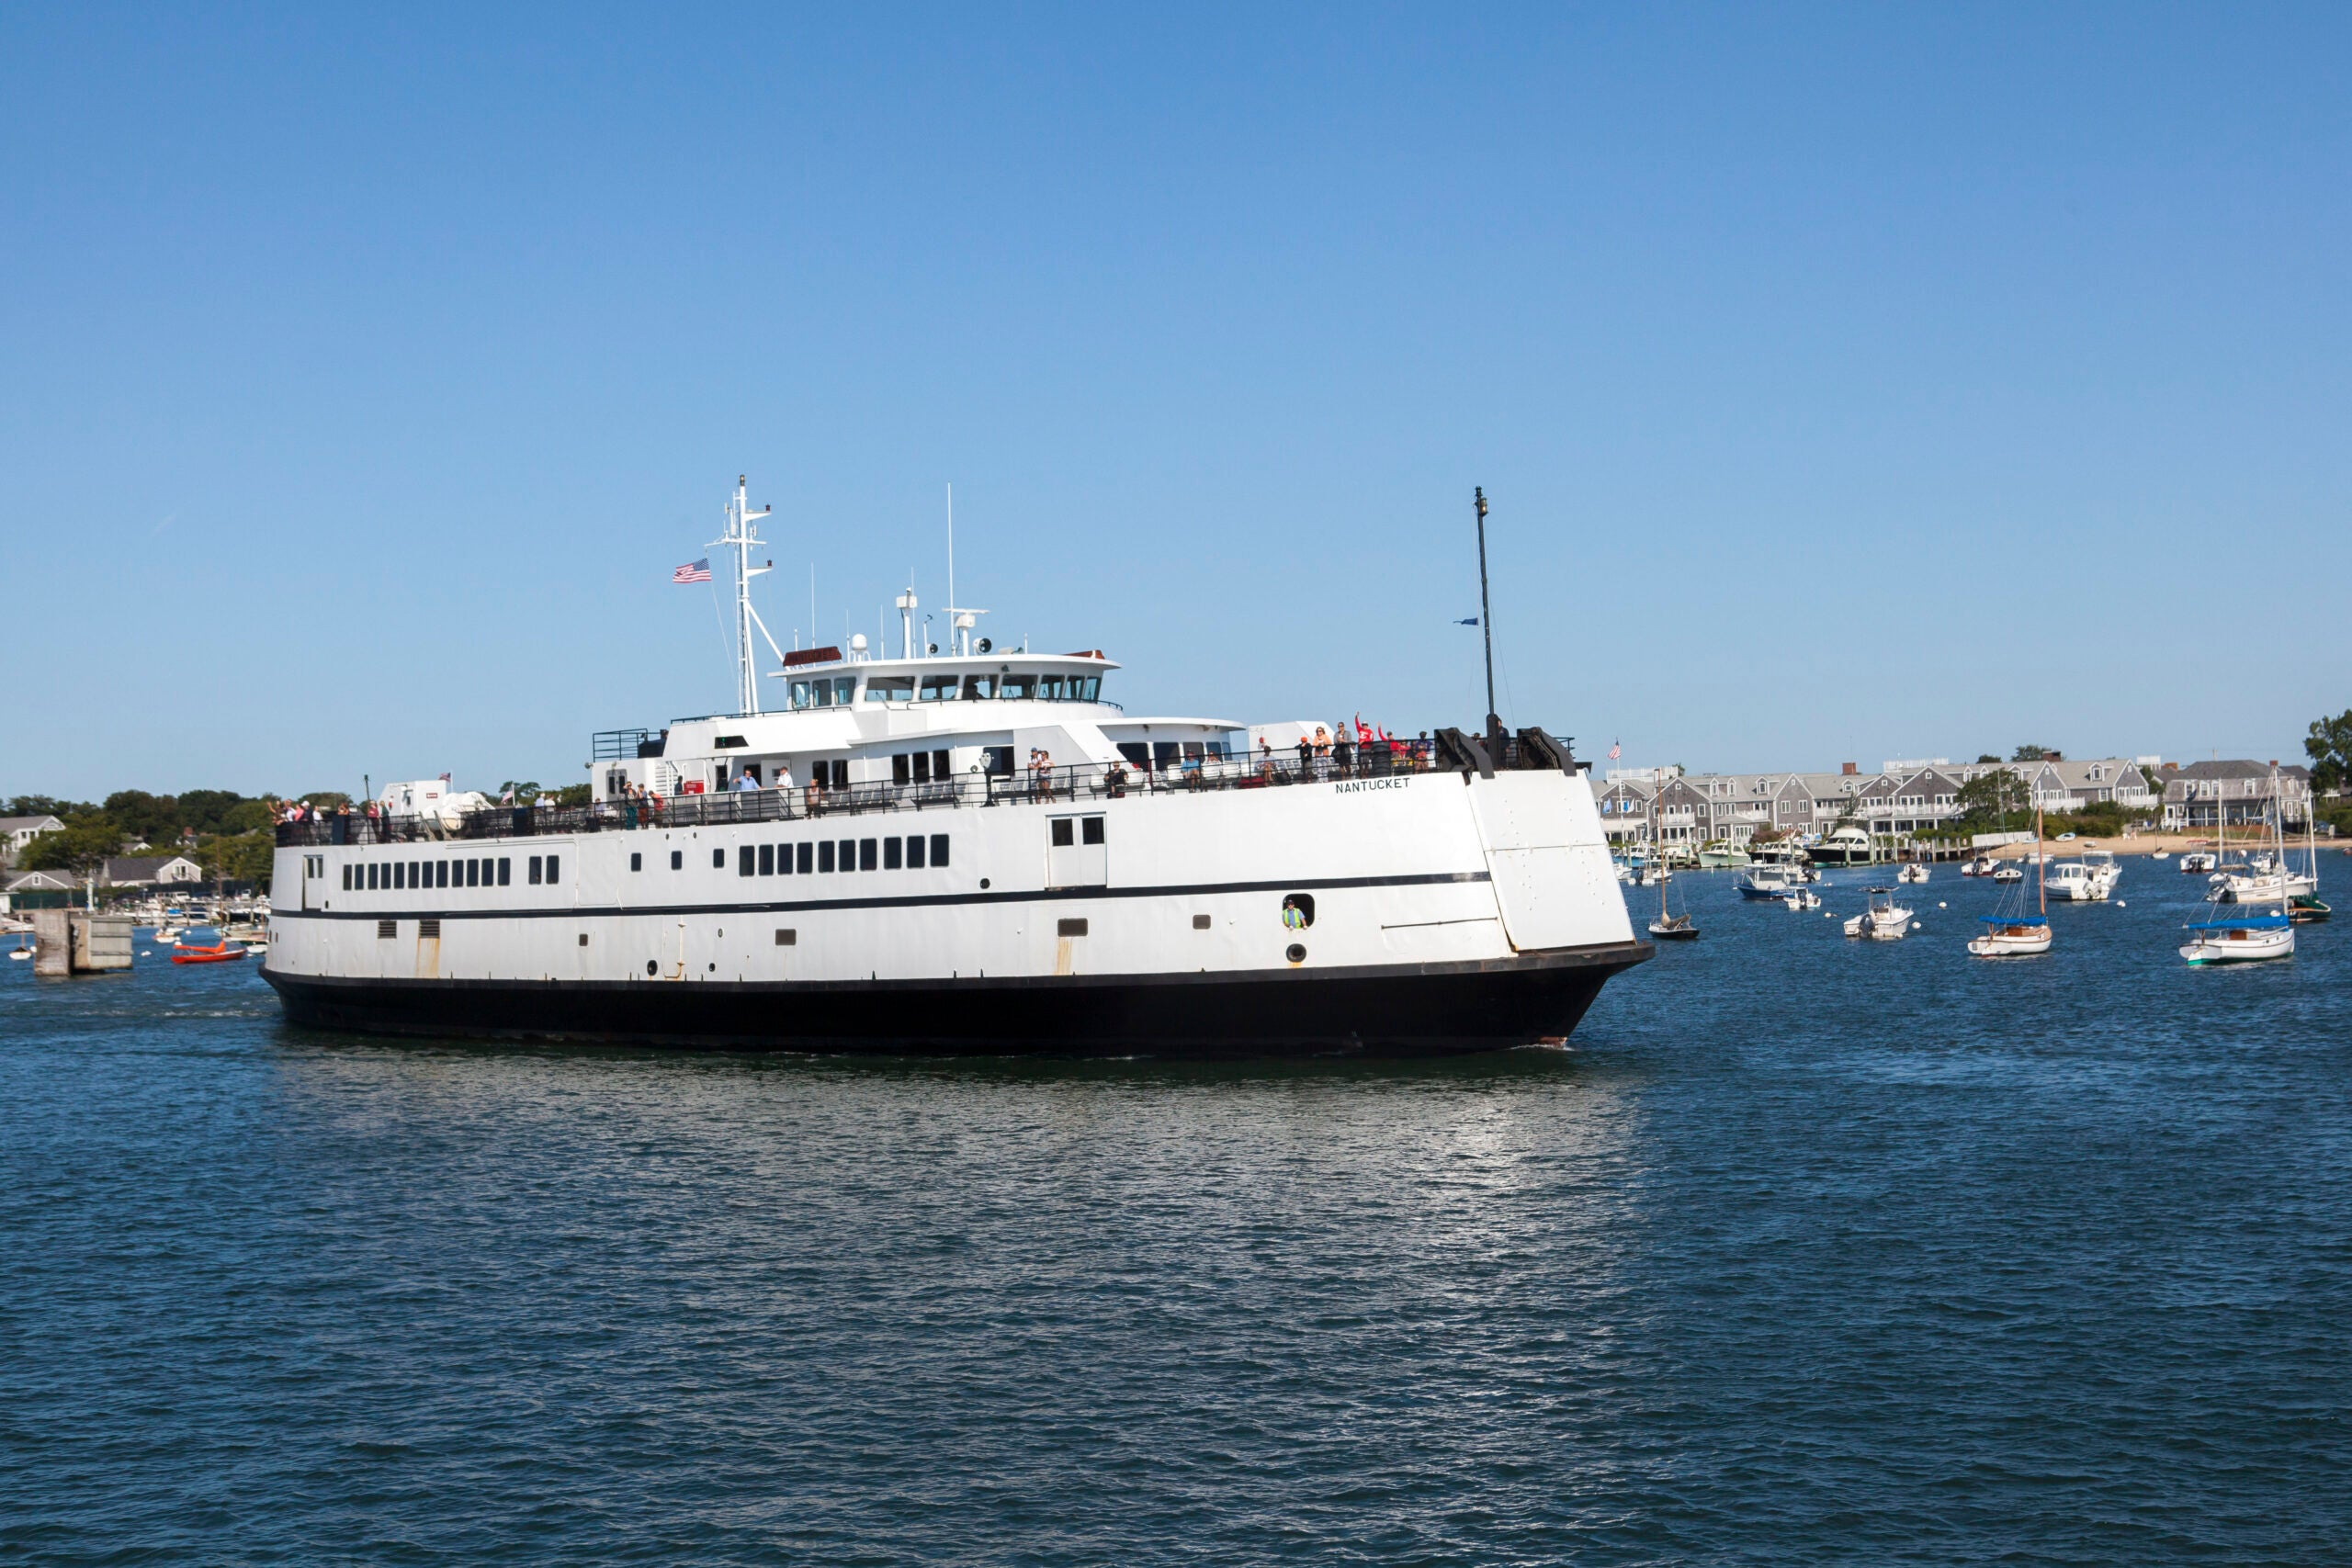 Steamship Authority ferry